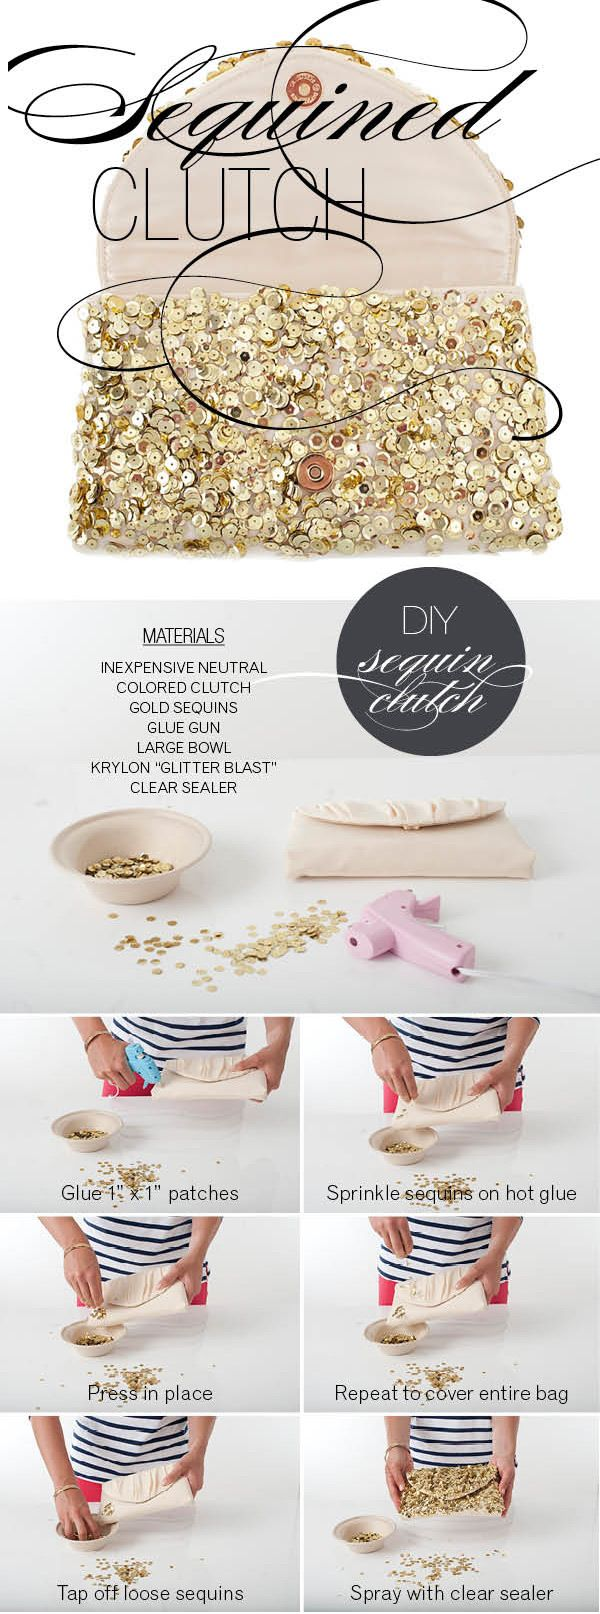 A little bit of sparkle. http://www.stylemepretty.com/2012/06/29/wrap-it-up-pretty-a-sequined-diy-winners/